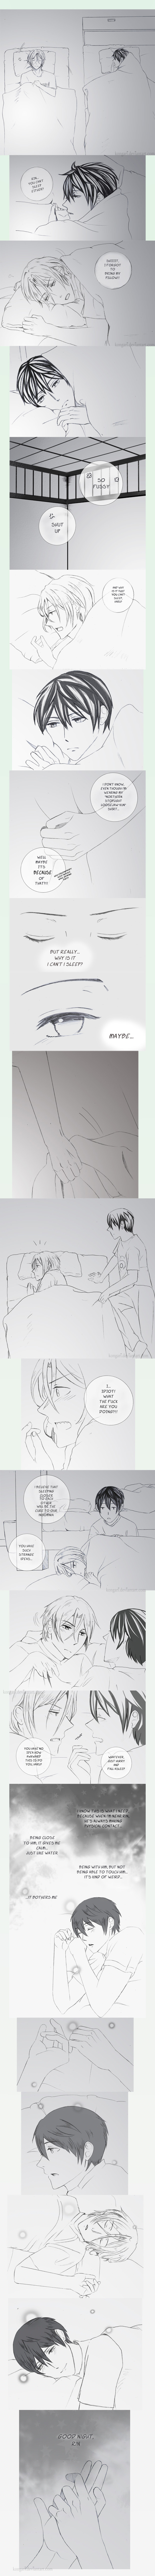 RinHaru - Goodnight, Rin by Pleionne